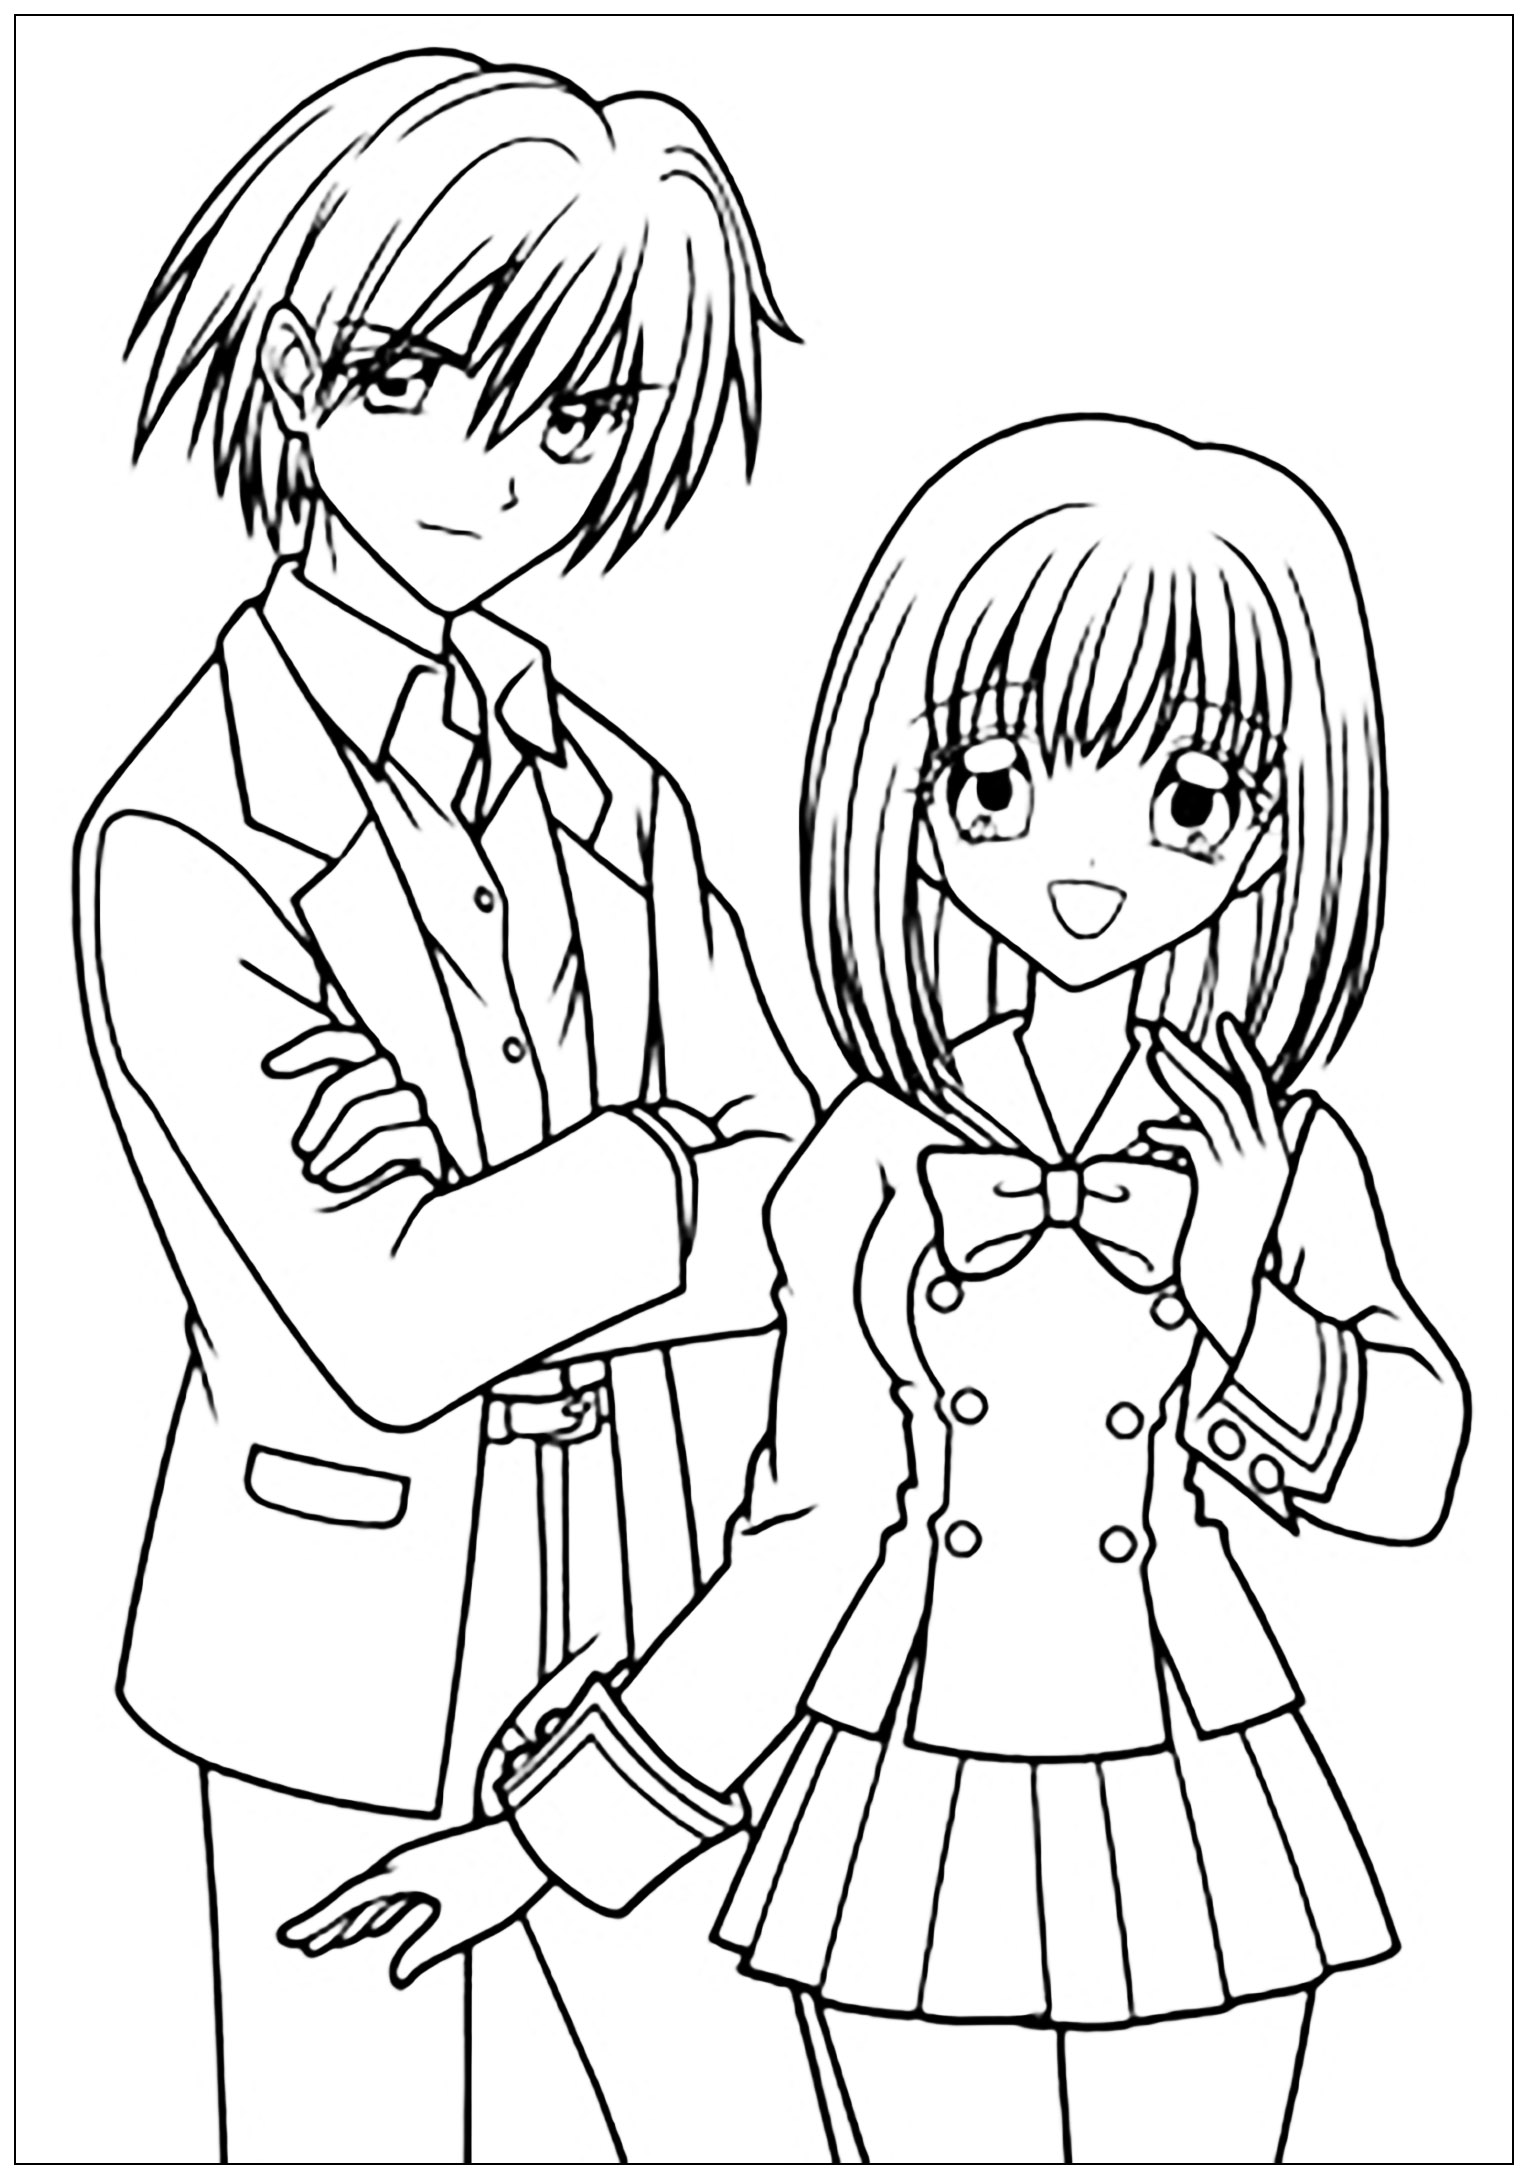 anime coloring pages to print manga coloring pages to download and print for free print coloring pages to anime